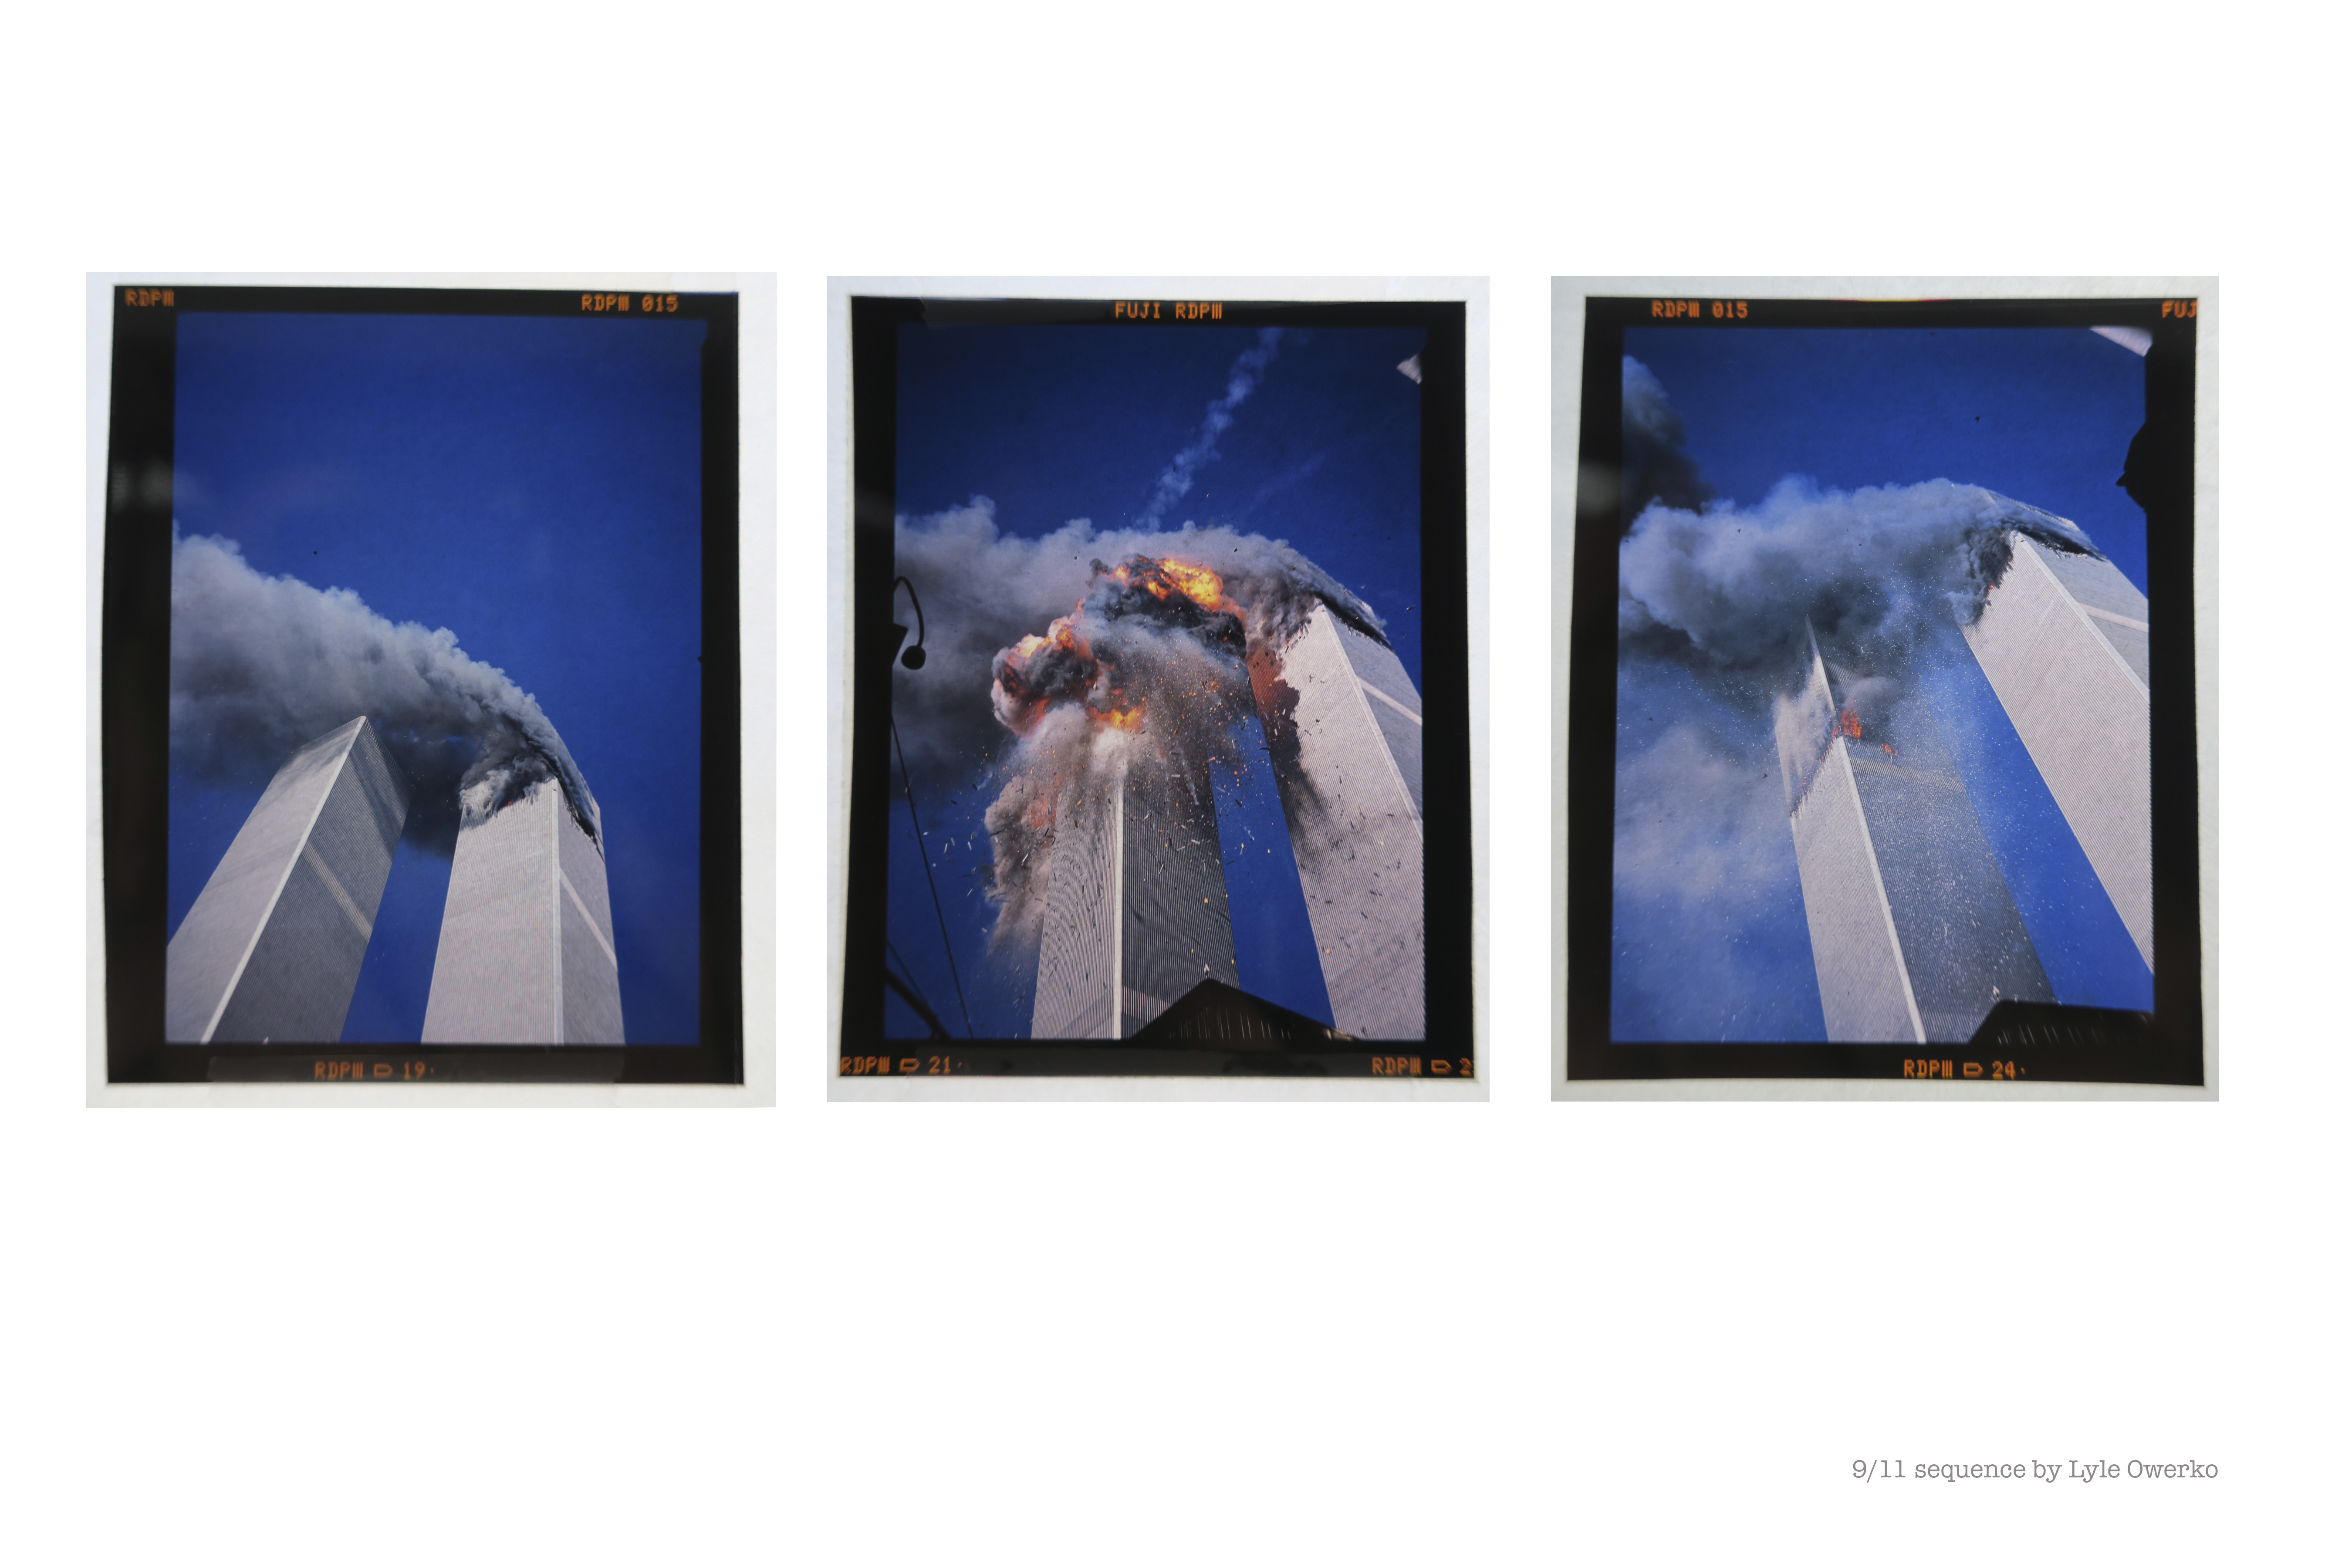 Three consecutive frames of the World Trade Center on the morning of 9/11 shot by photographer Lyle Owerko.